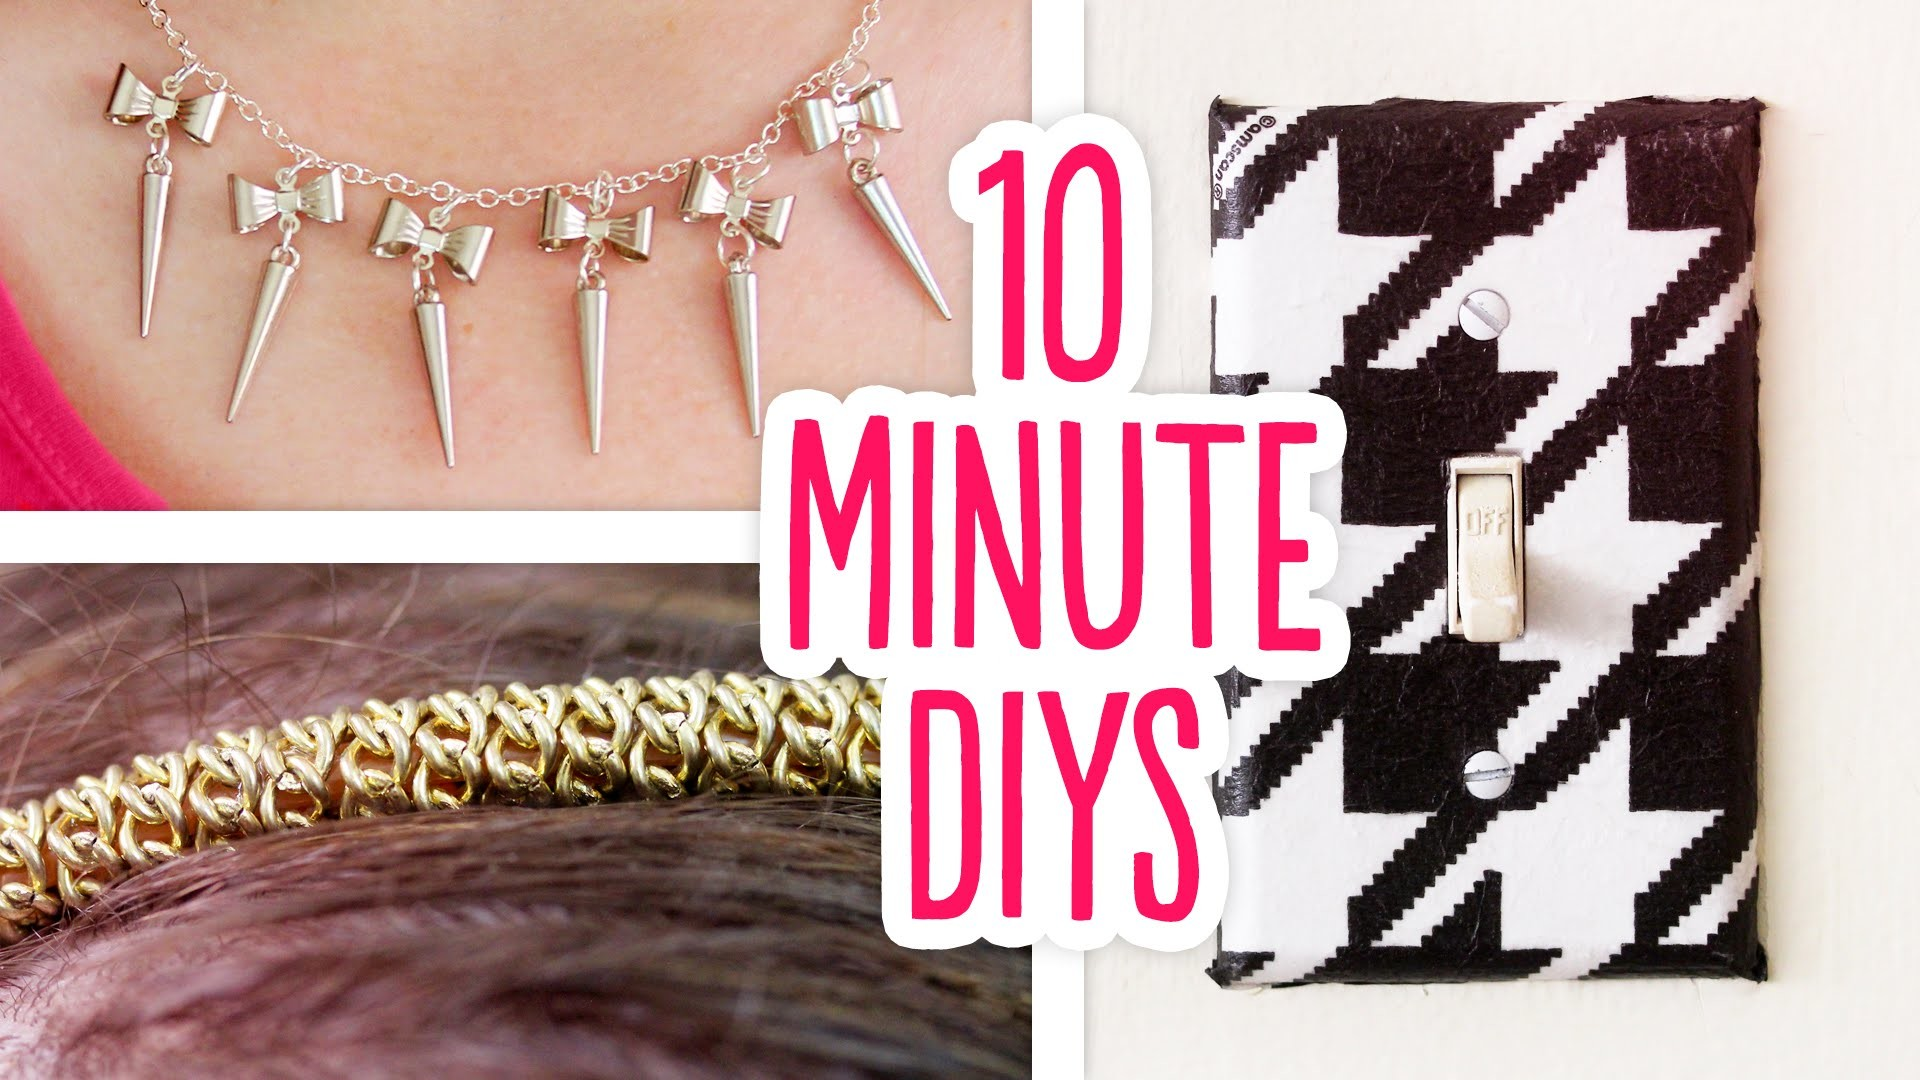 10 Minute DIYs! - Gold Chain Headband, Spike & Bow Necklace, Houndstooth Light Switch